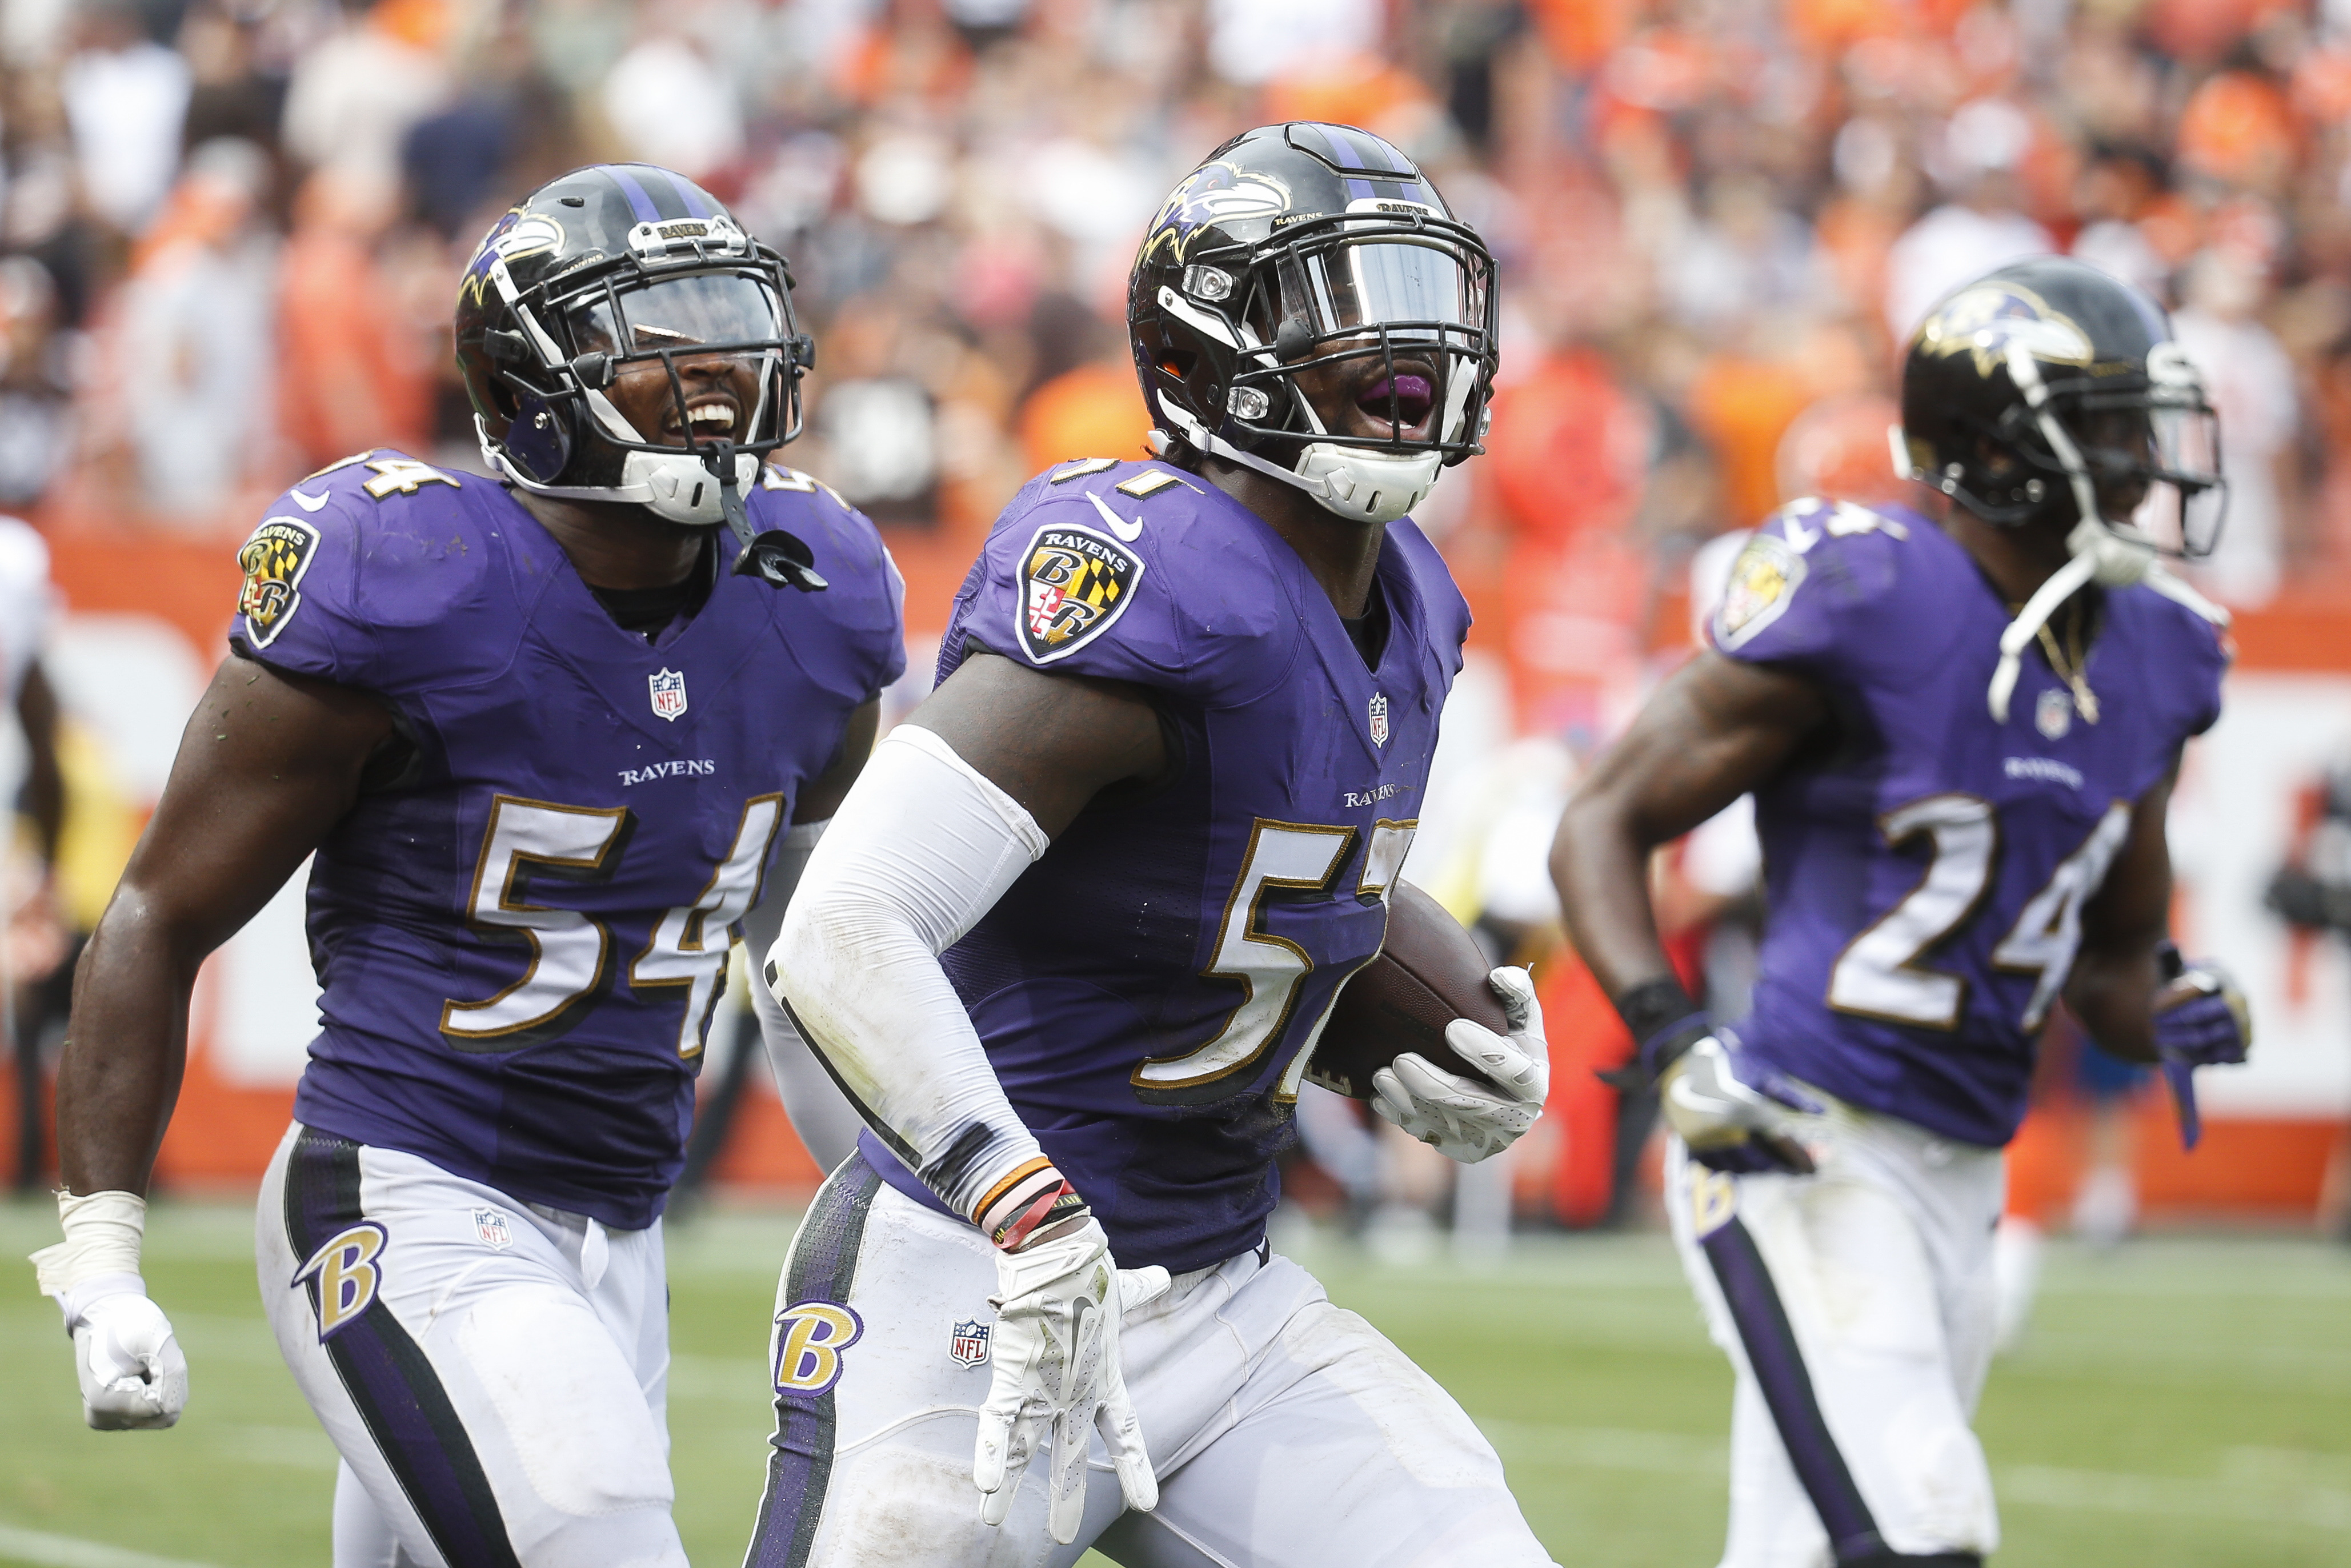 Baltimore Ravens inside linebacker C.J. Mosley, center, celebrates alongside inside linebacker Zach Orr (54) and cornerback Shareece Wright (24) after catching an interception in the final seconds of the second half of an NFL football game against the Cle